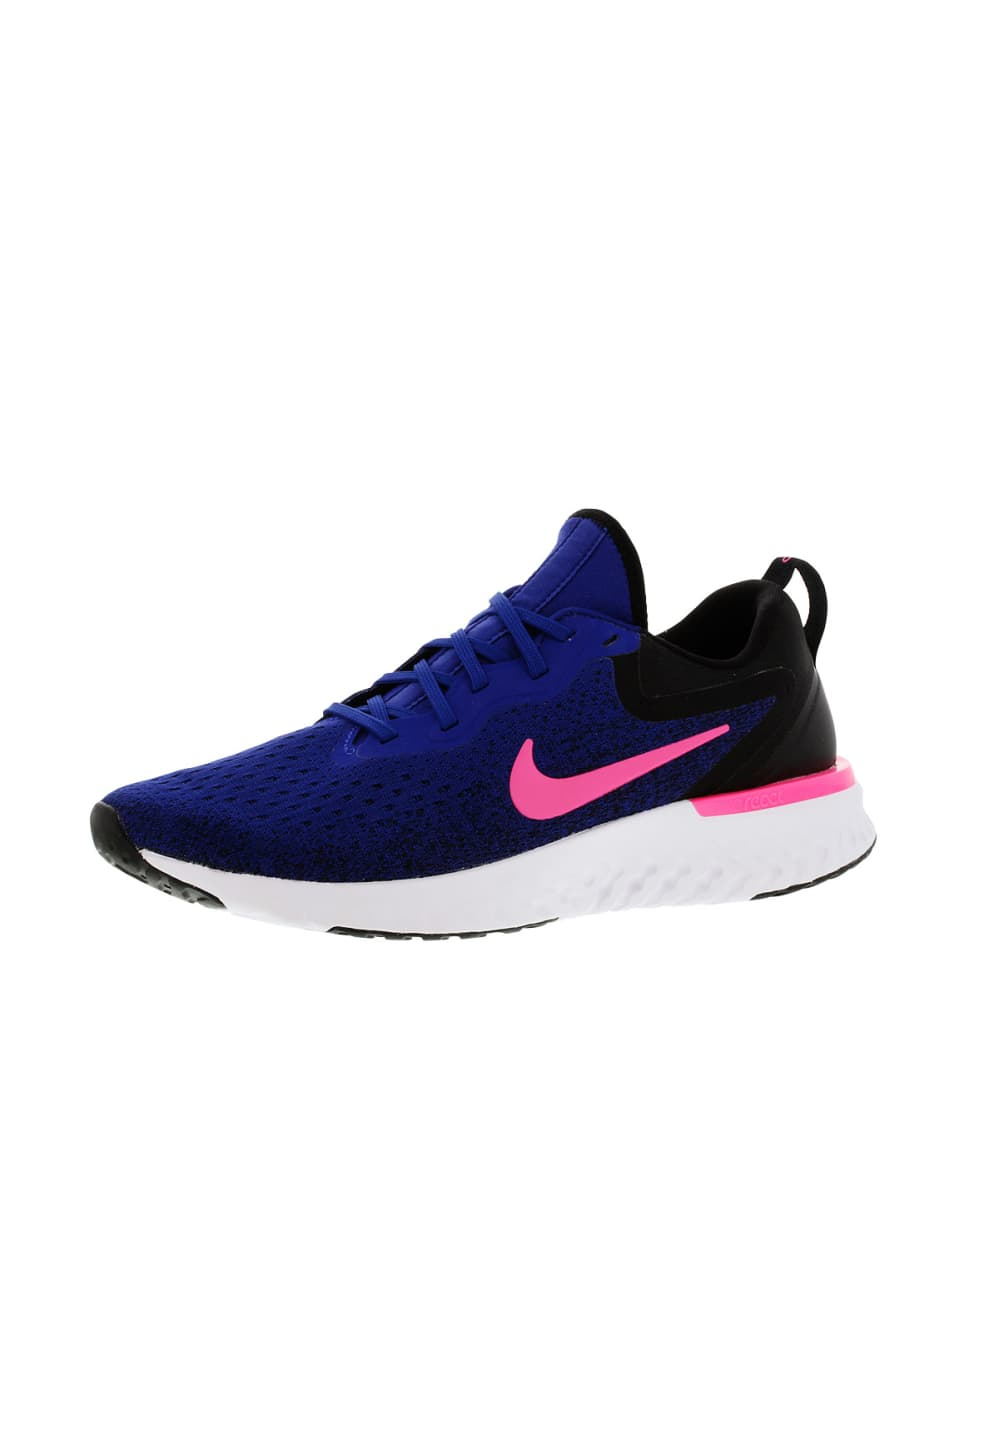 1f4d79a03010 Nike Odyssey React - Running shoes for Women - Blue